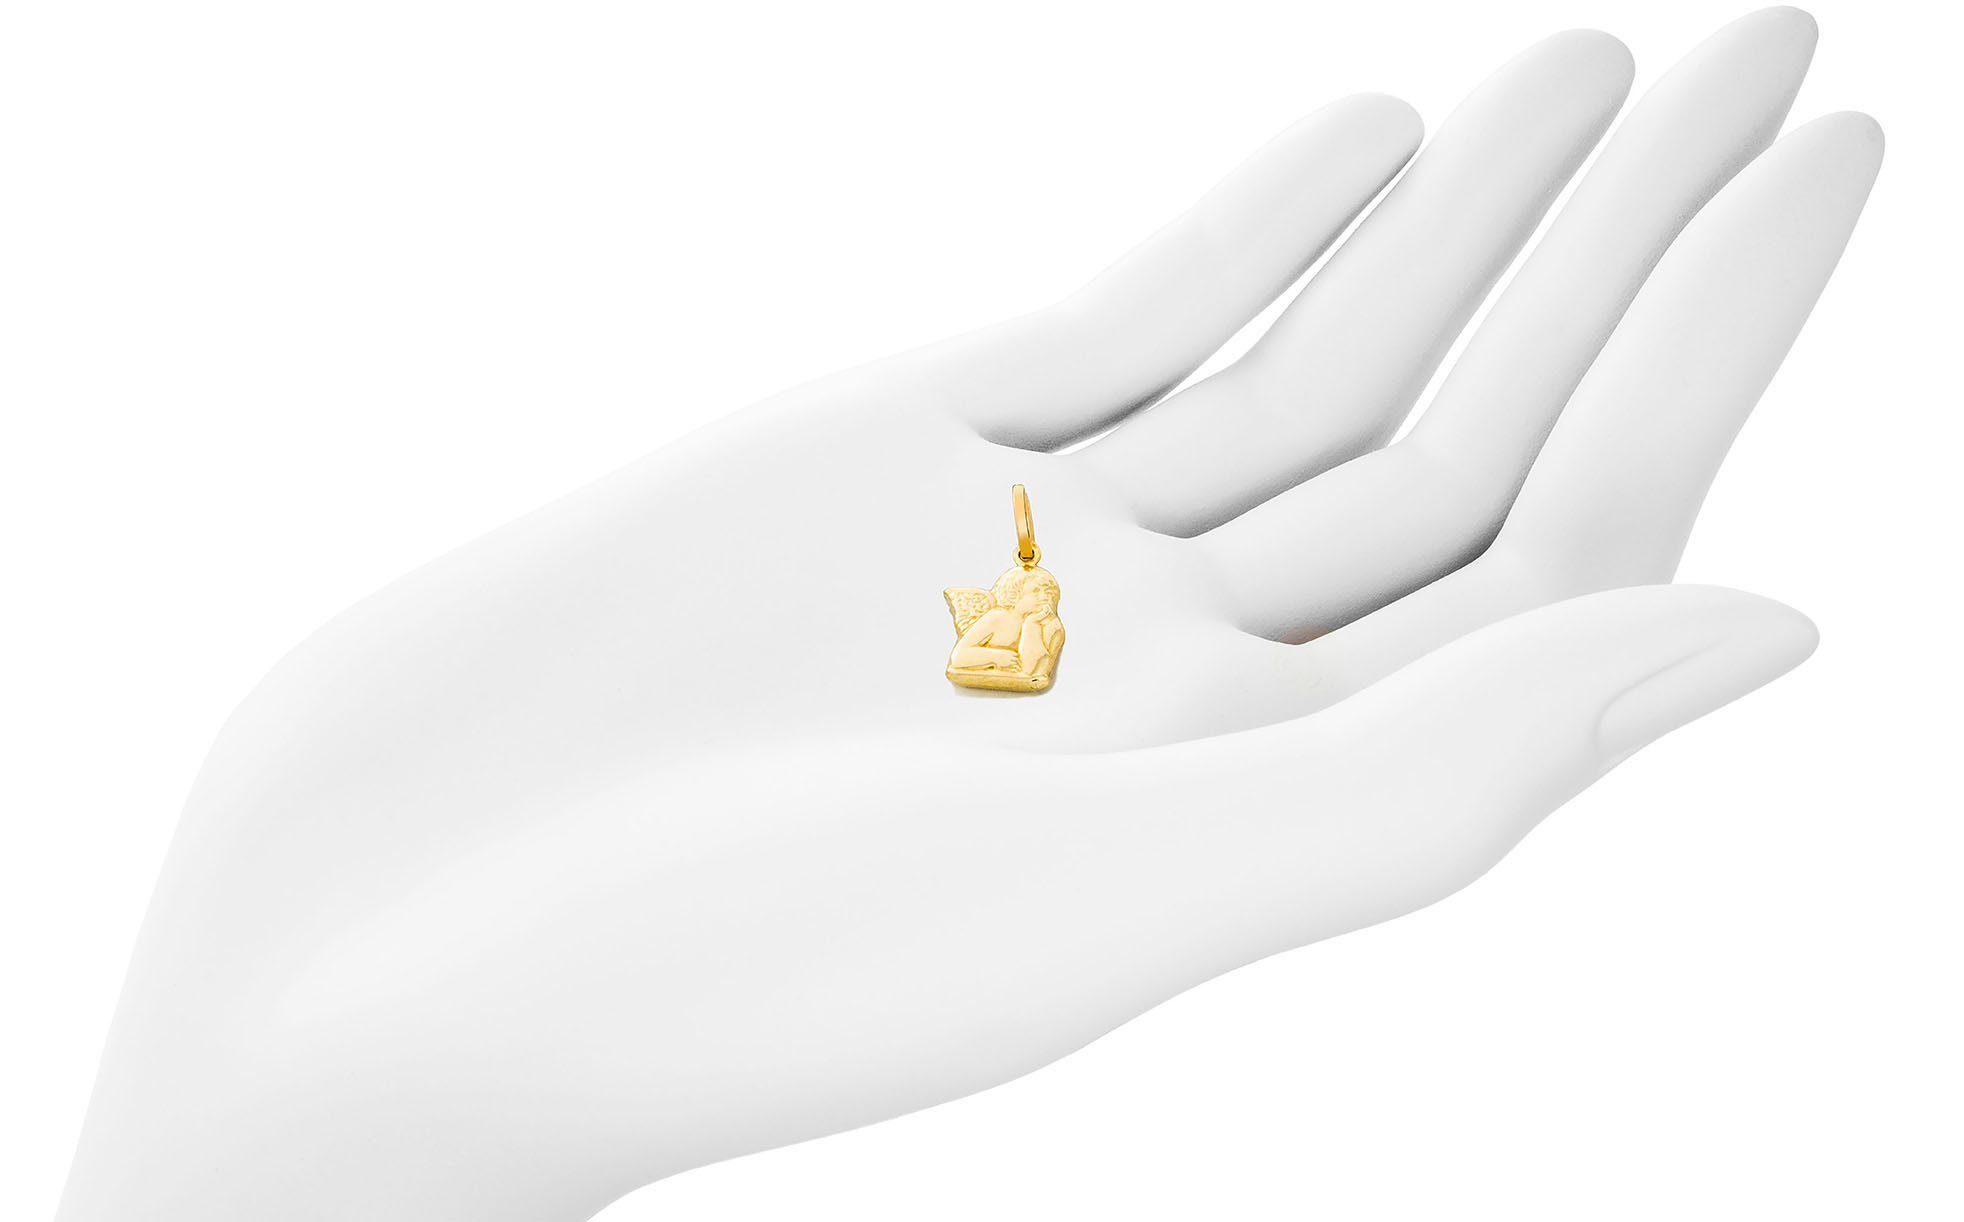 Solid Gold Angel Charm of Raphael Angel Cherub (Hollow) 14K Yellow Gold 15.1mm Tall by 12.7mm Wide | 1.2g by Trusted Jewelers (Image #2)